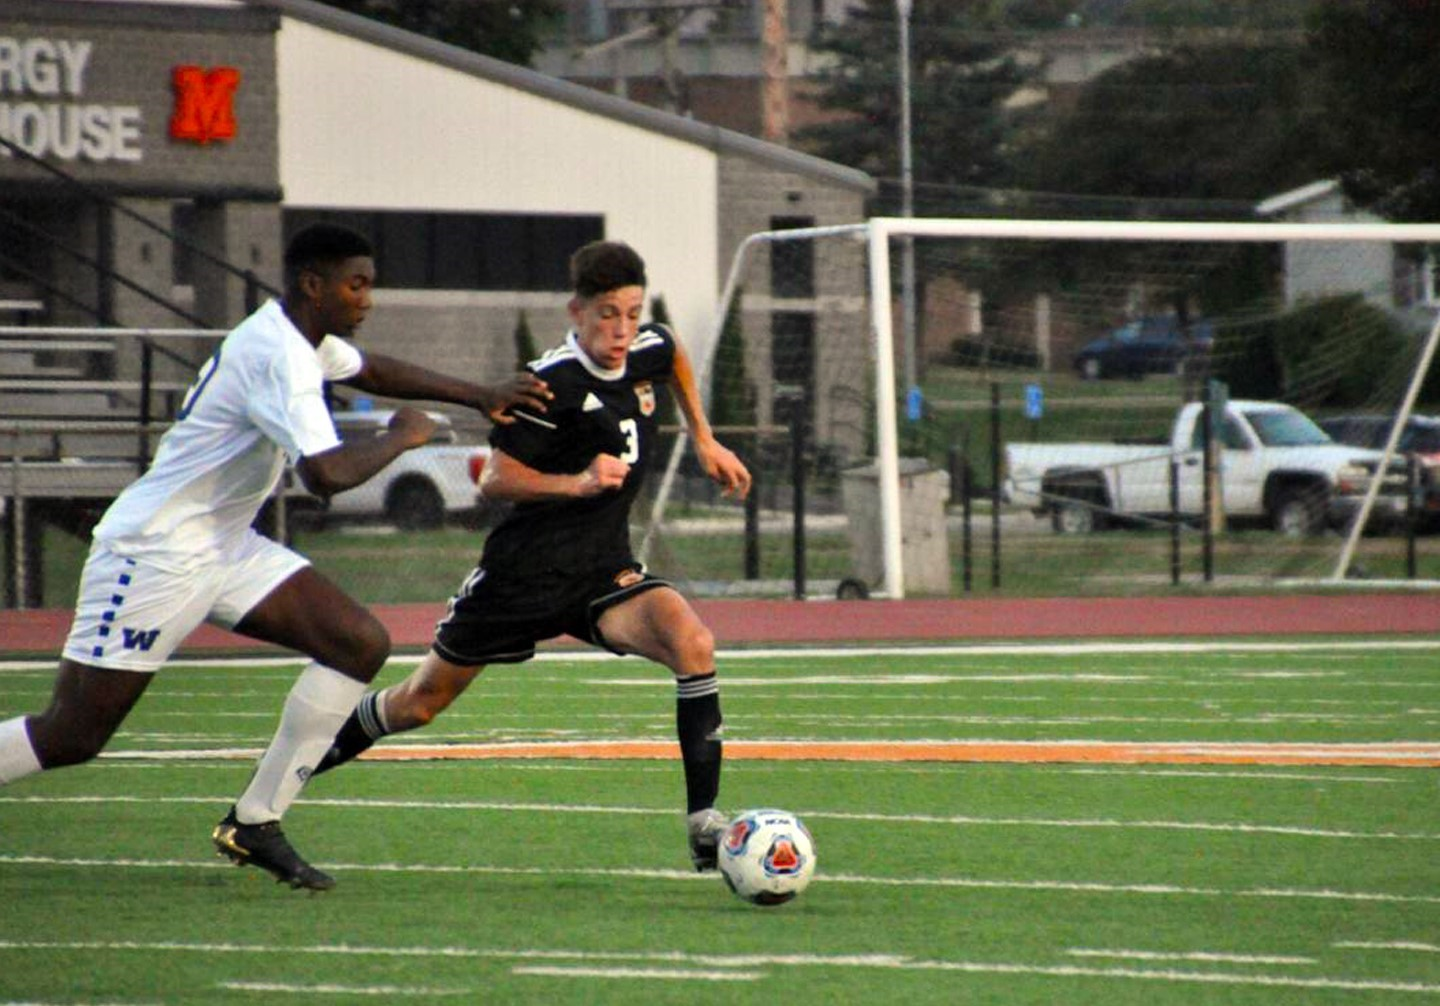 Mount Vernon soccer player kicking the ball past a Wooster opponent.